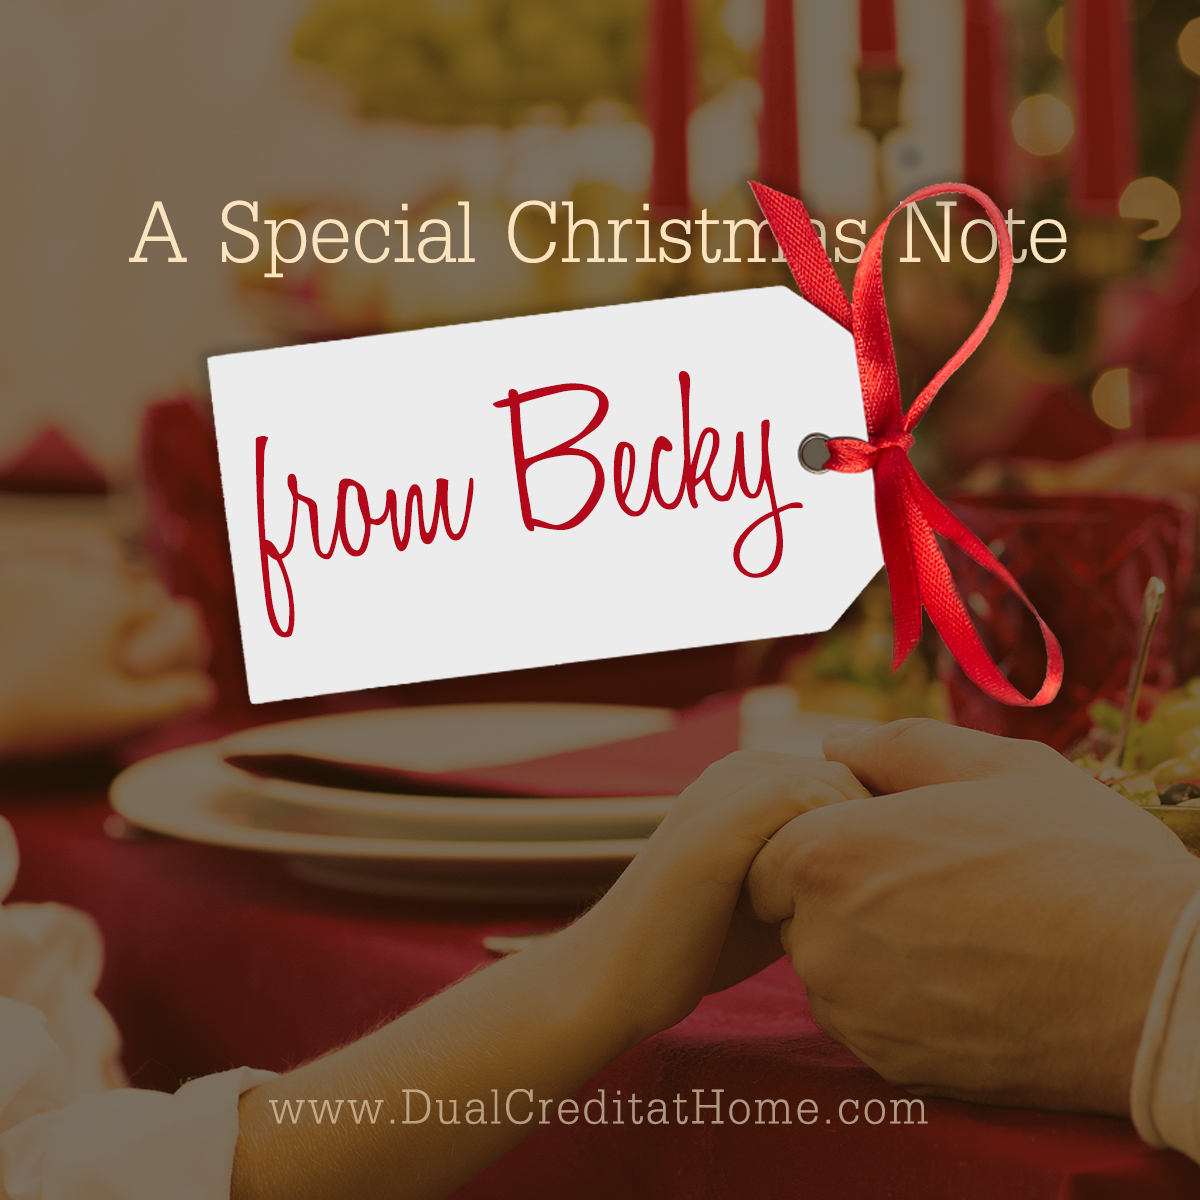 A Special Christmas Note from Becky